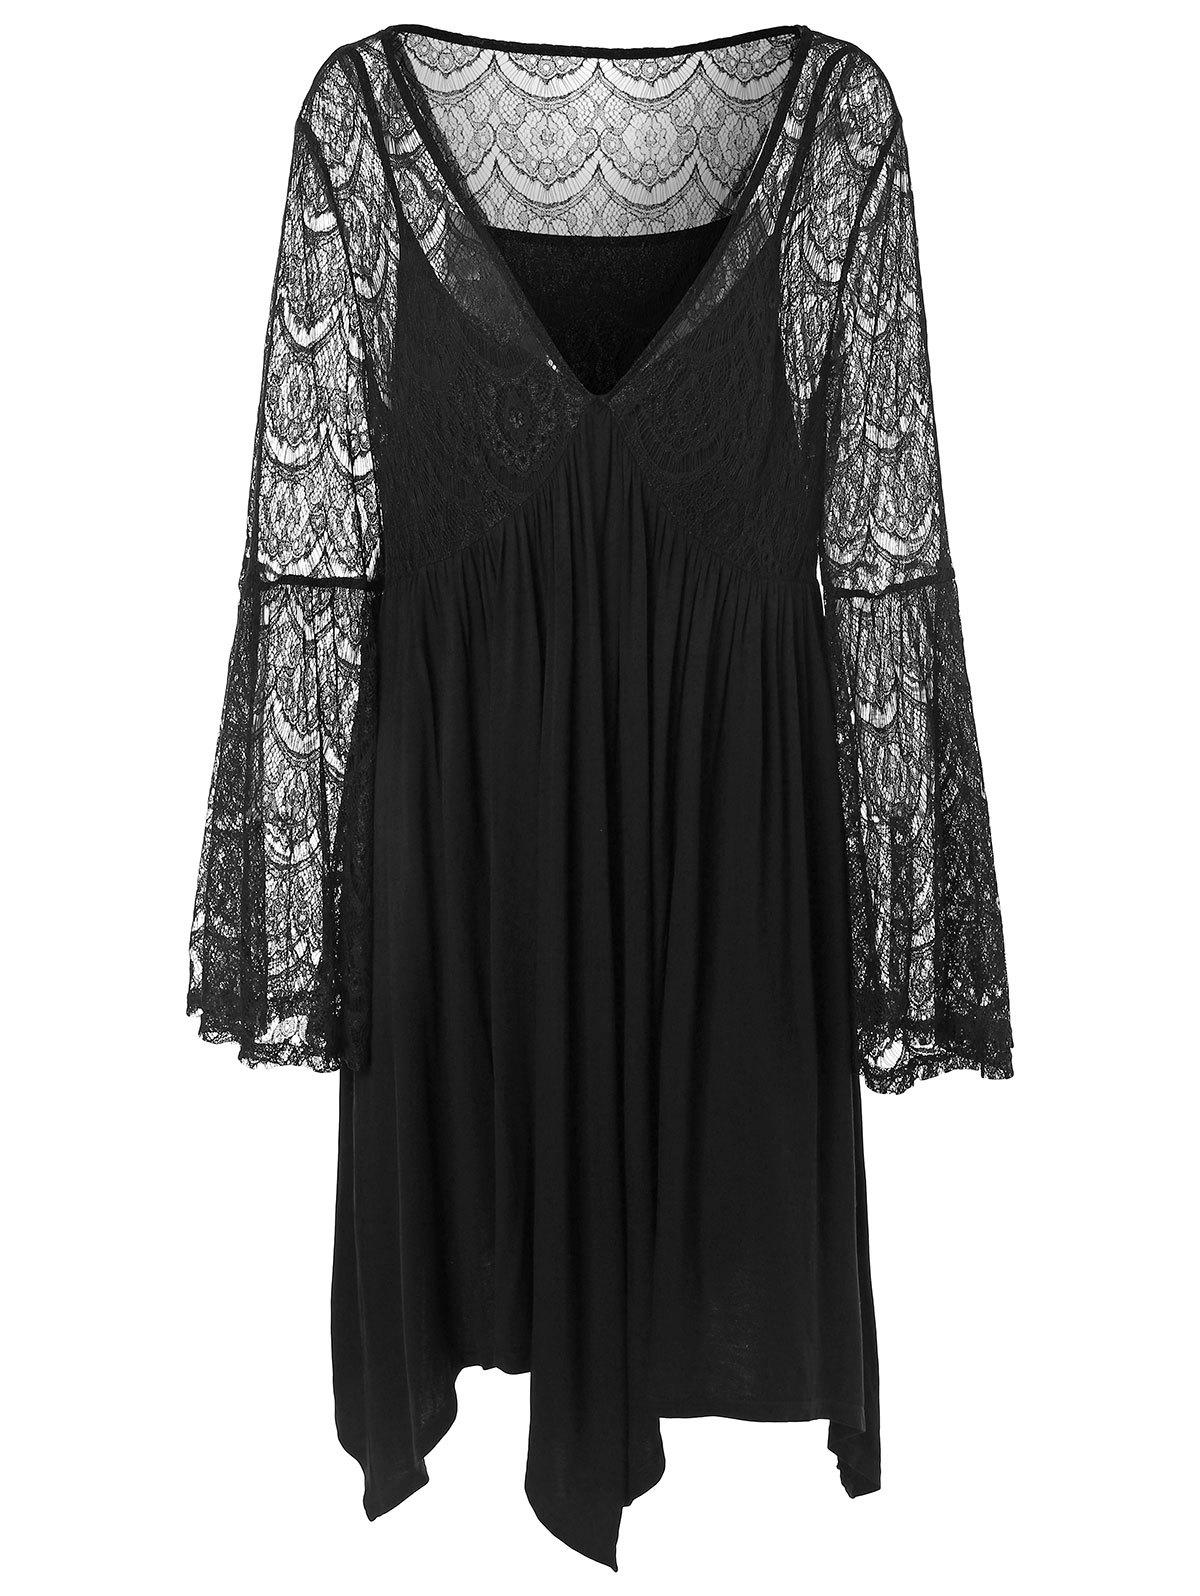 Plus Size Plunging Neckline Bell Sleeve Lace Insert Dress - BLACK 1X